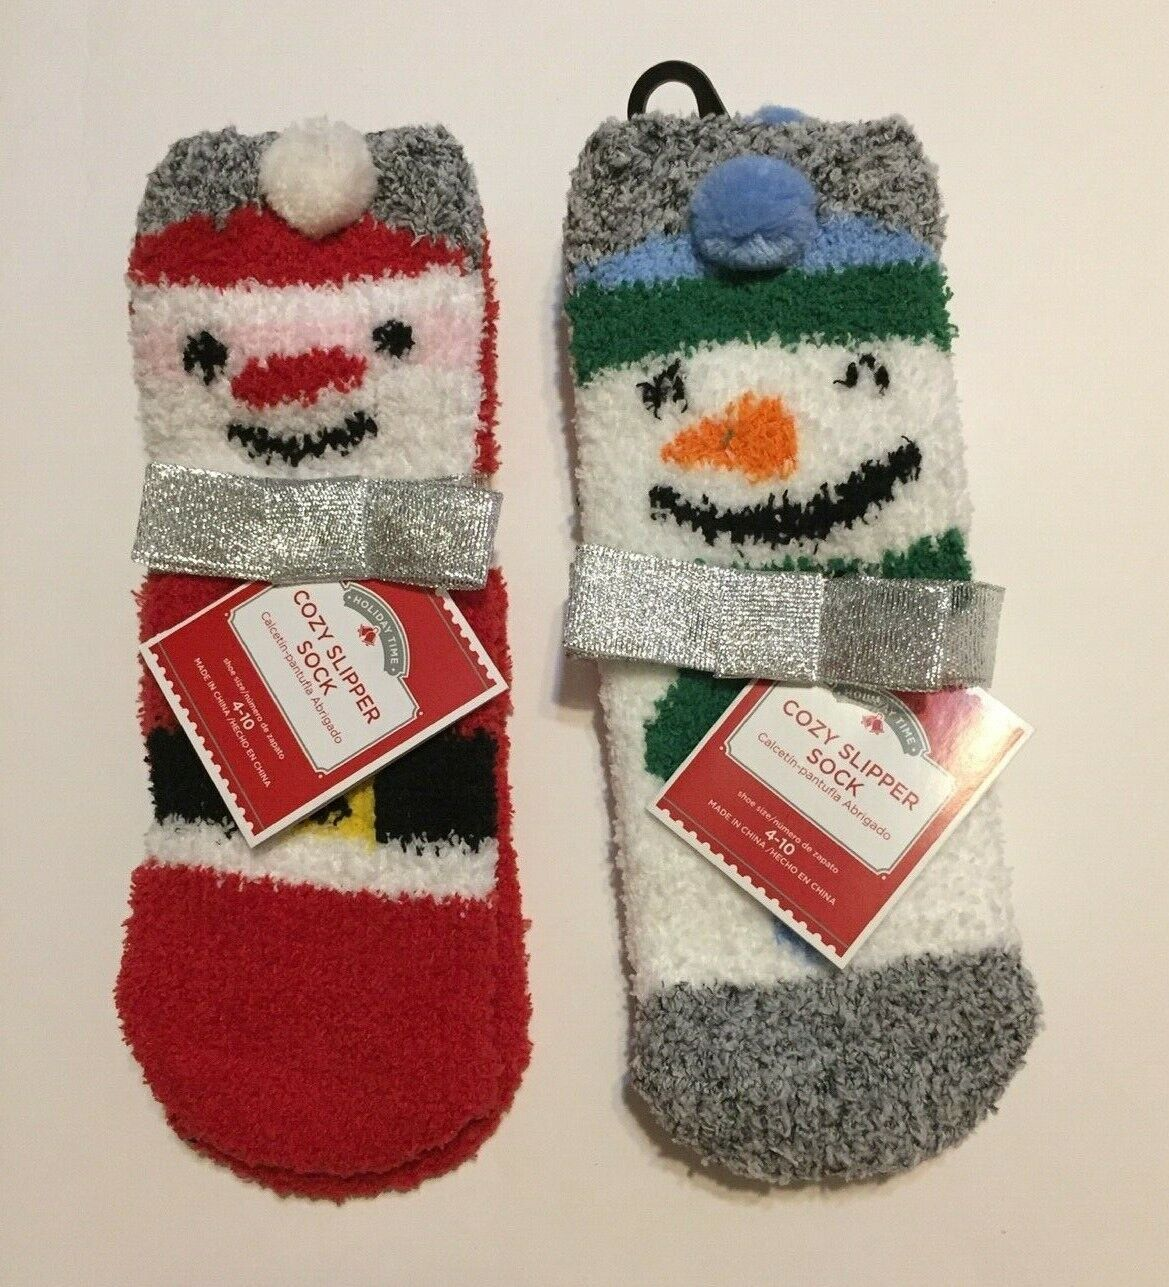 2 Pairs Women's Christmas Cozy Slipper Ankle Socks Shoe Size